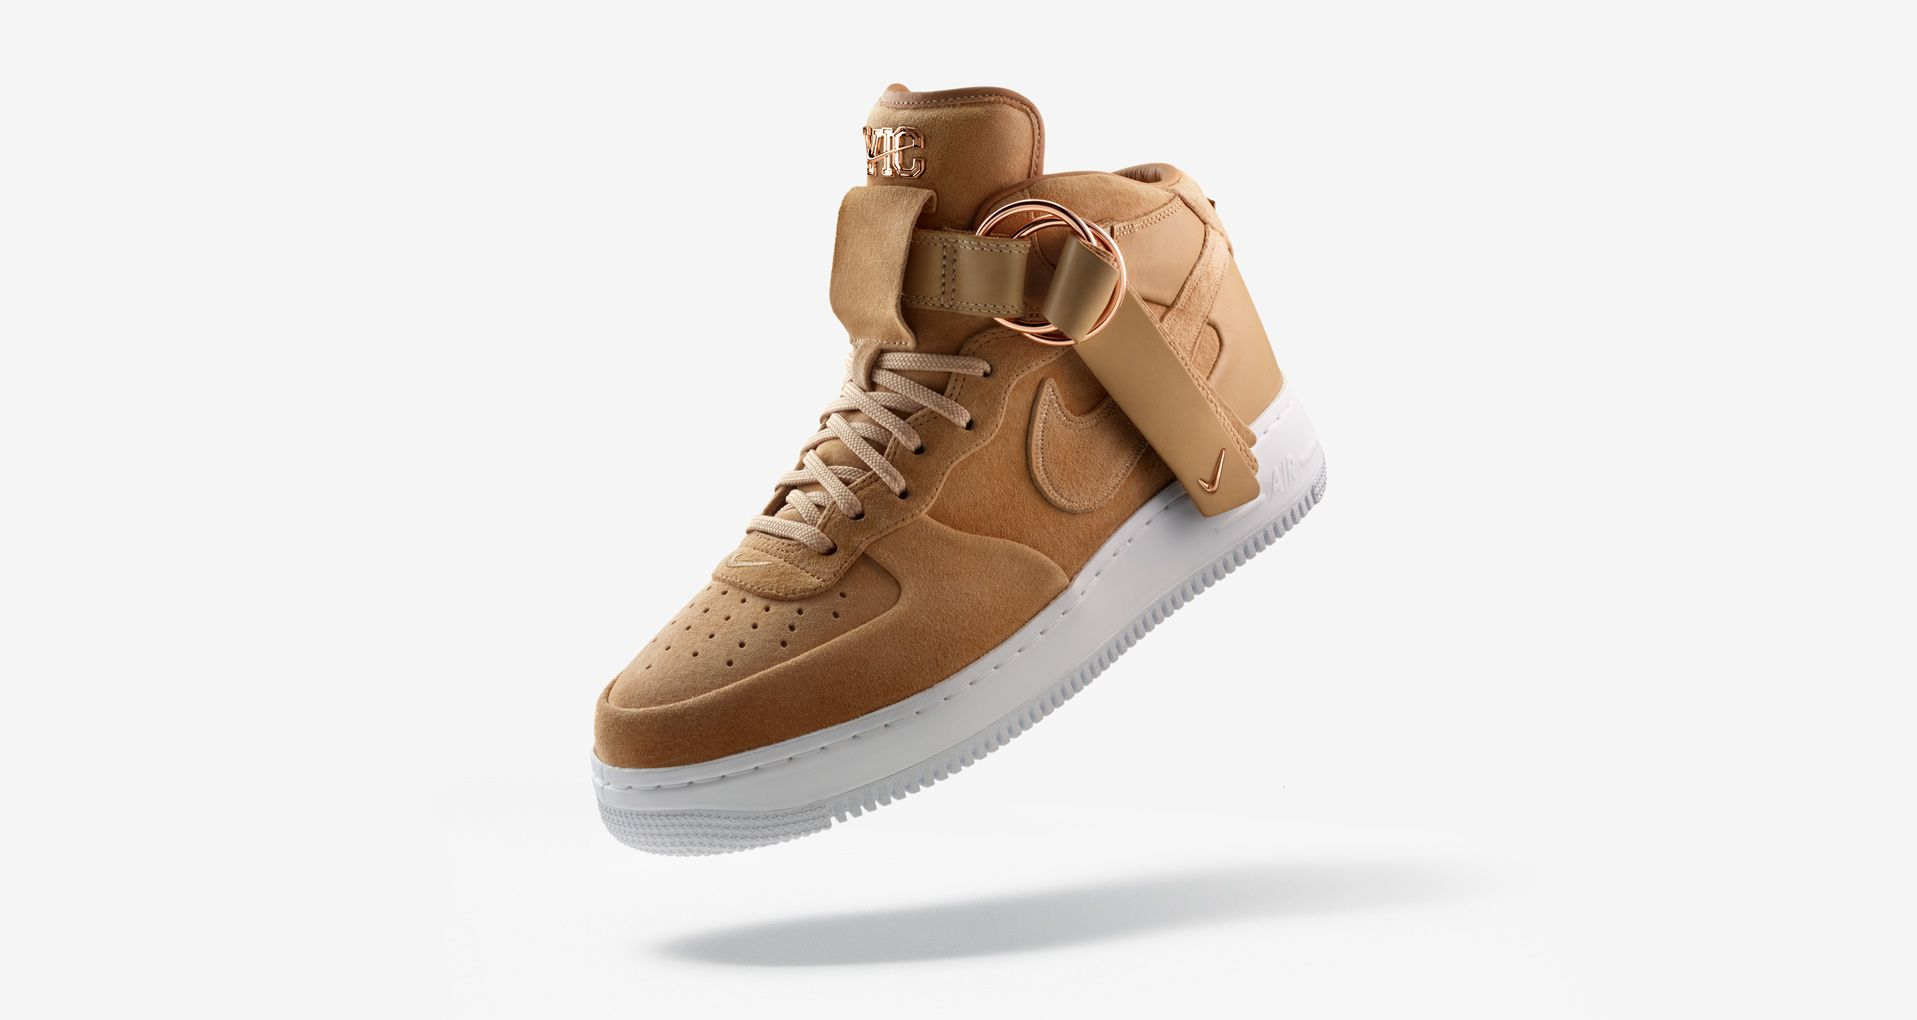 Now Available: V.Cruz x Nike Air Force 1 Mid